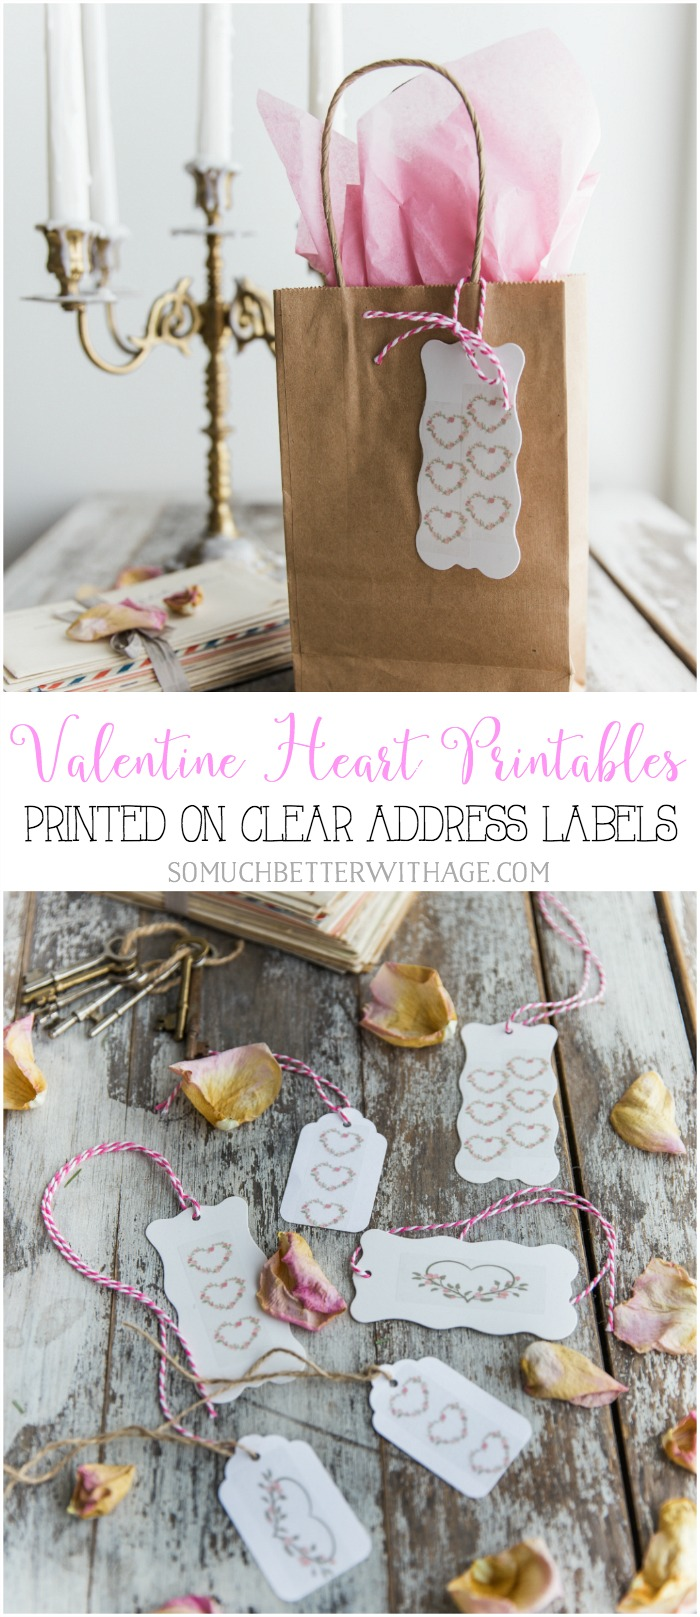 Valentine Heart Printables - Printed on Clear Address Labels - So Much Better With Age